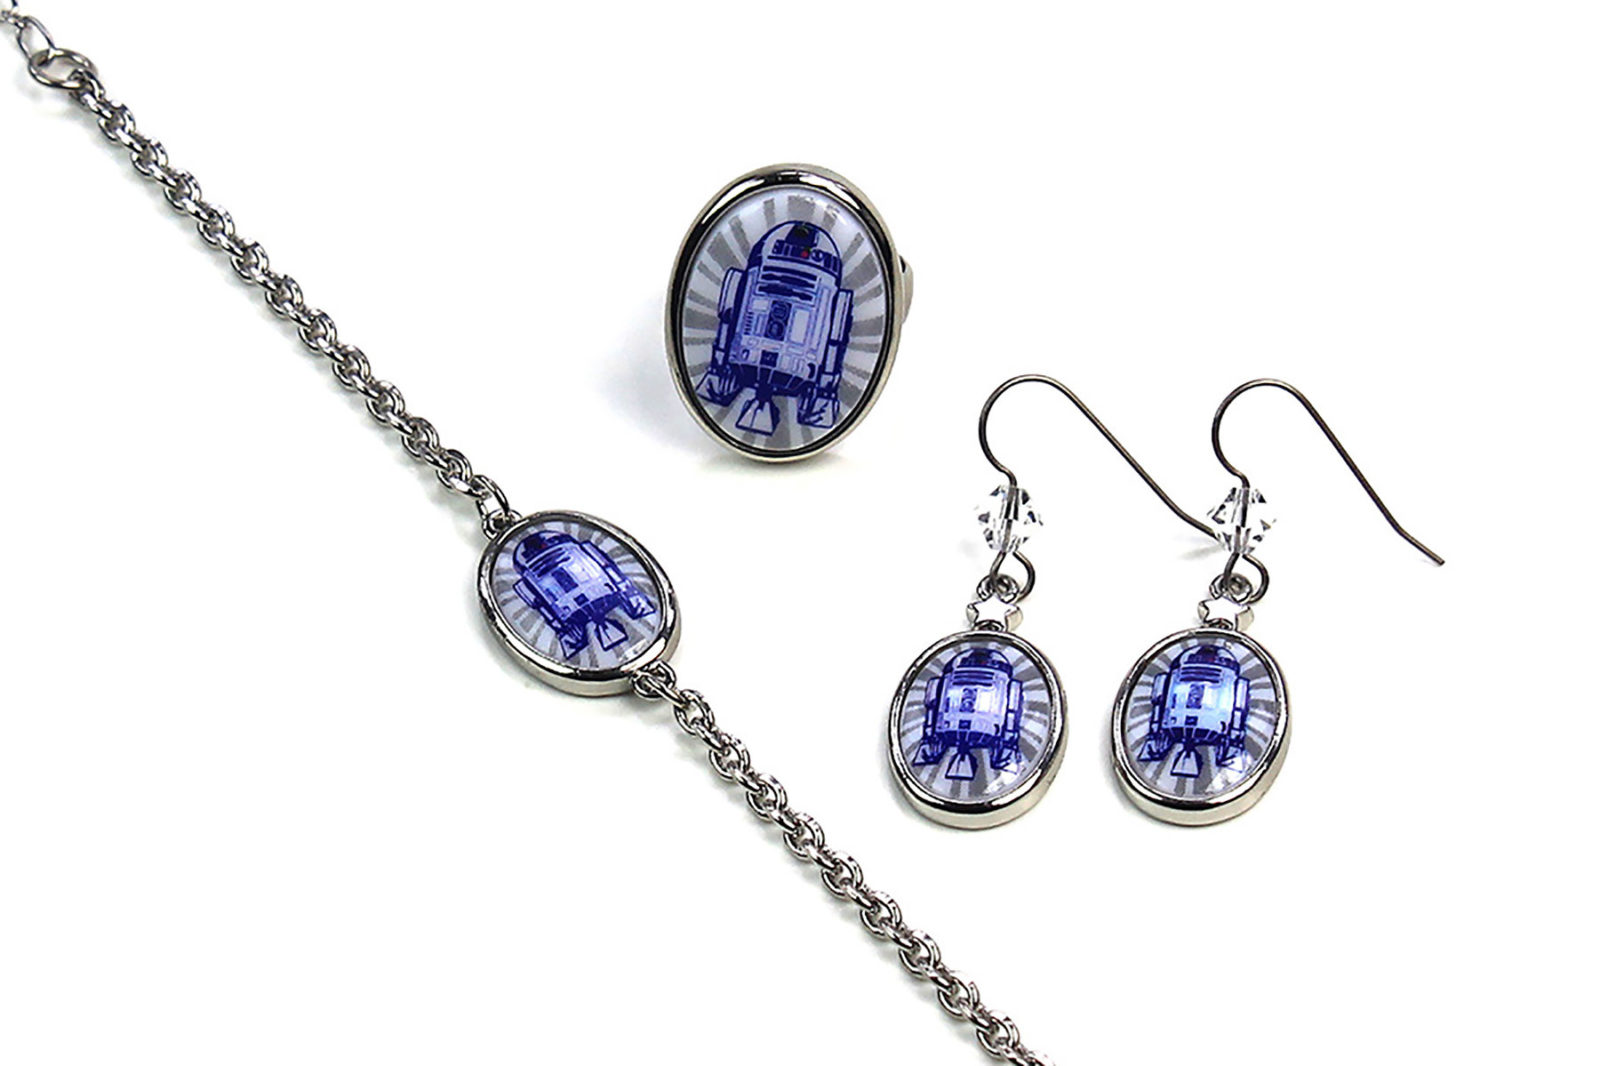 Review – R2-D2 jewelry